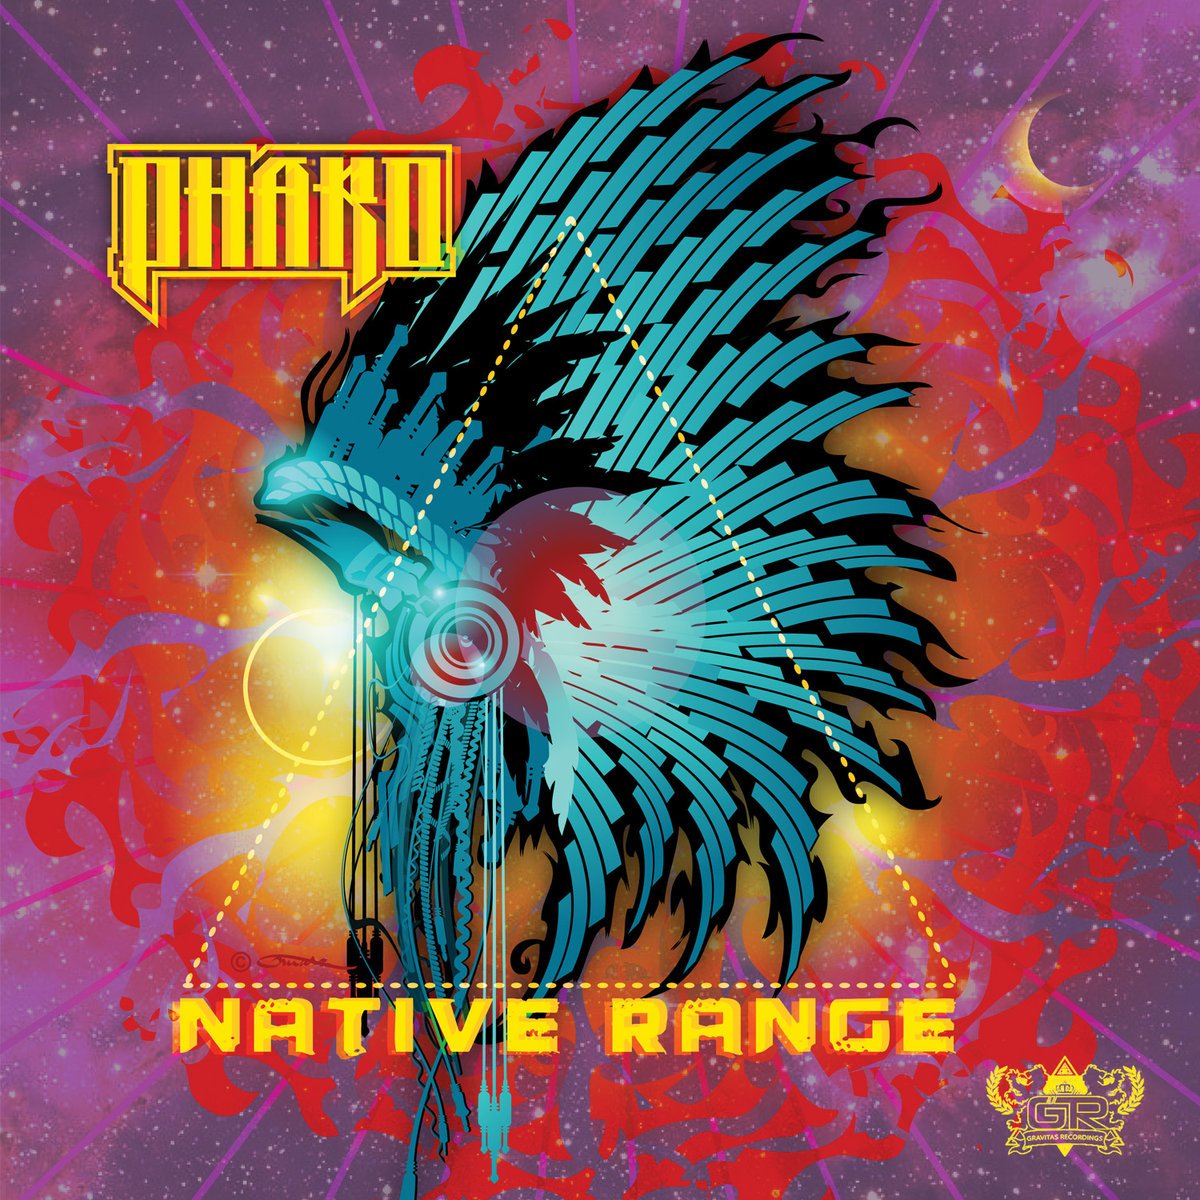 Pharo - Kerplunk @ 'Native Range' album (Austin)